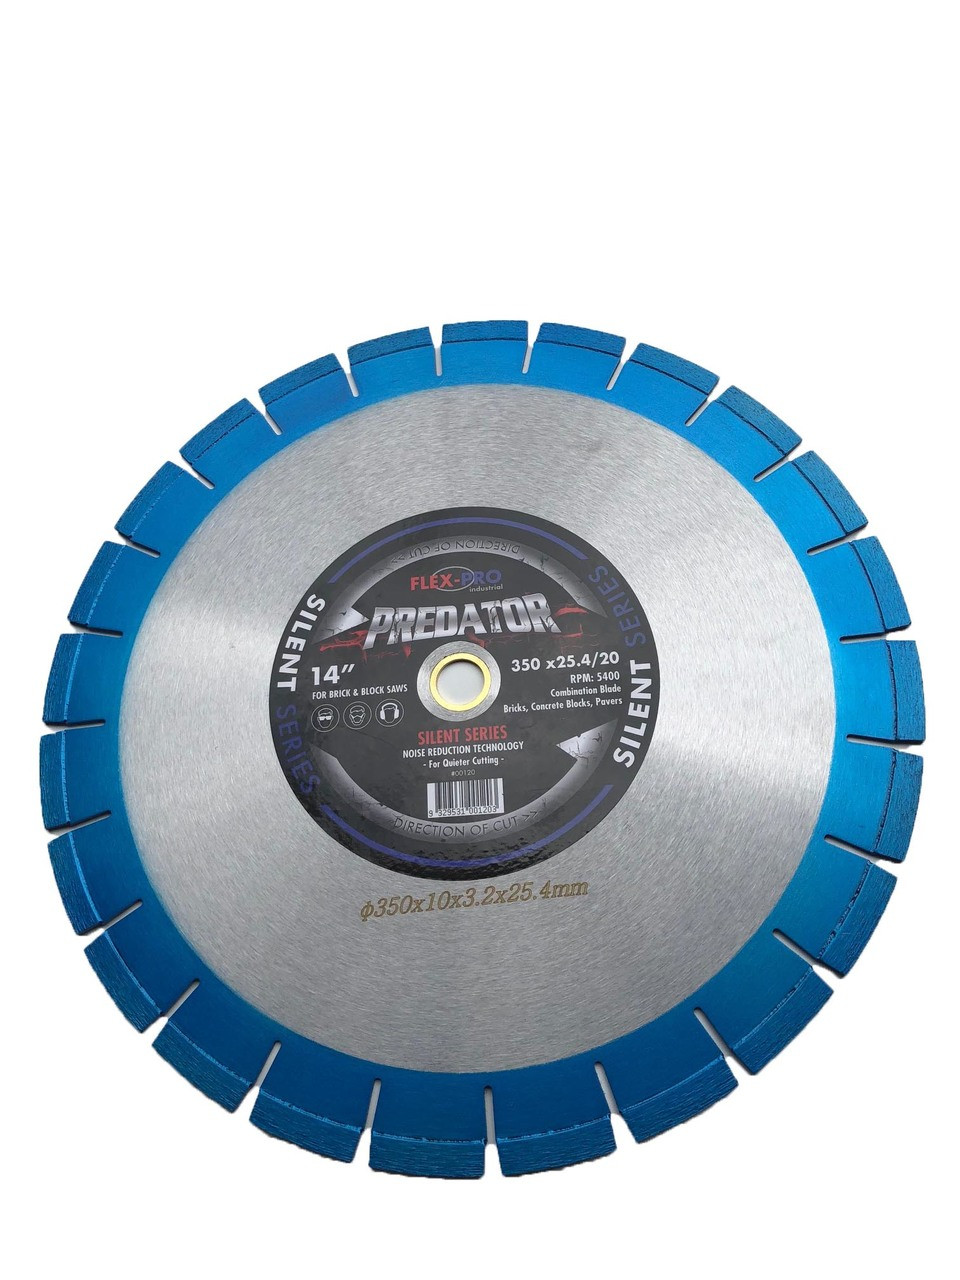 "Diamond saw blade 14"" Laser welded Reduced Noise SILENT FLEX PRO"